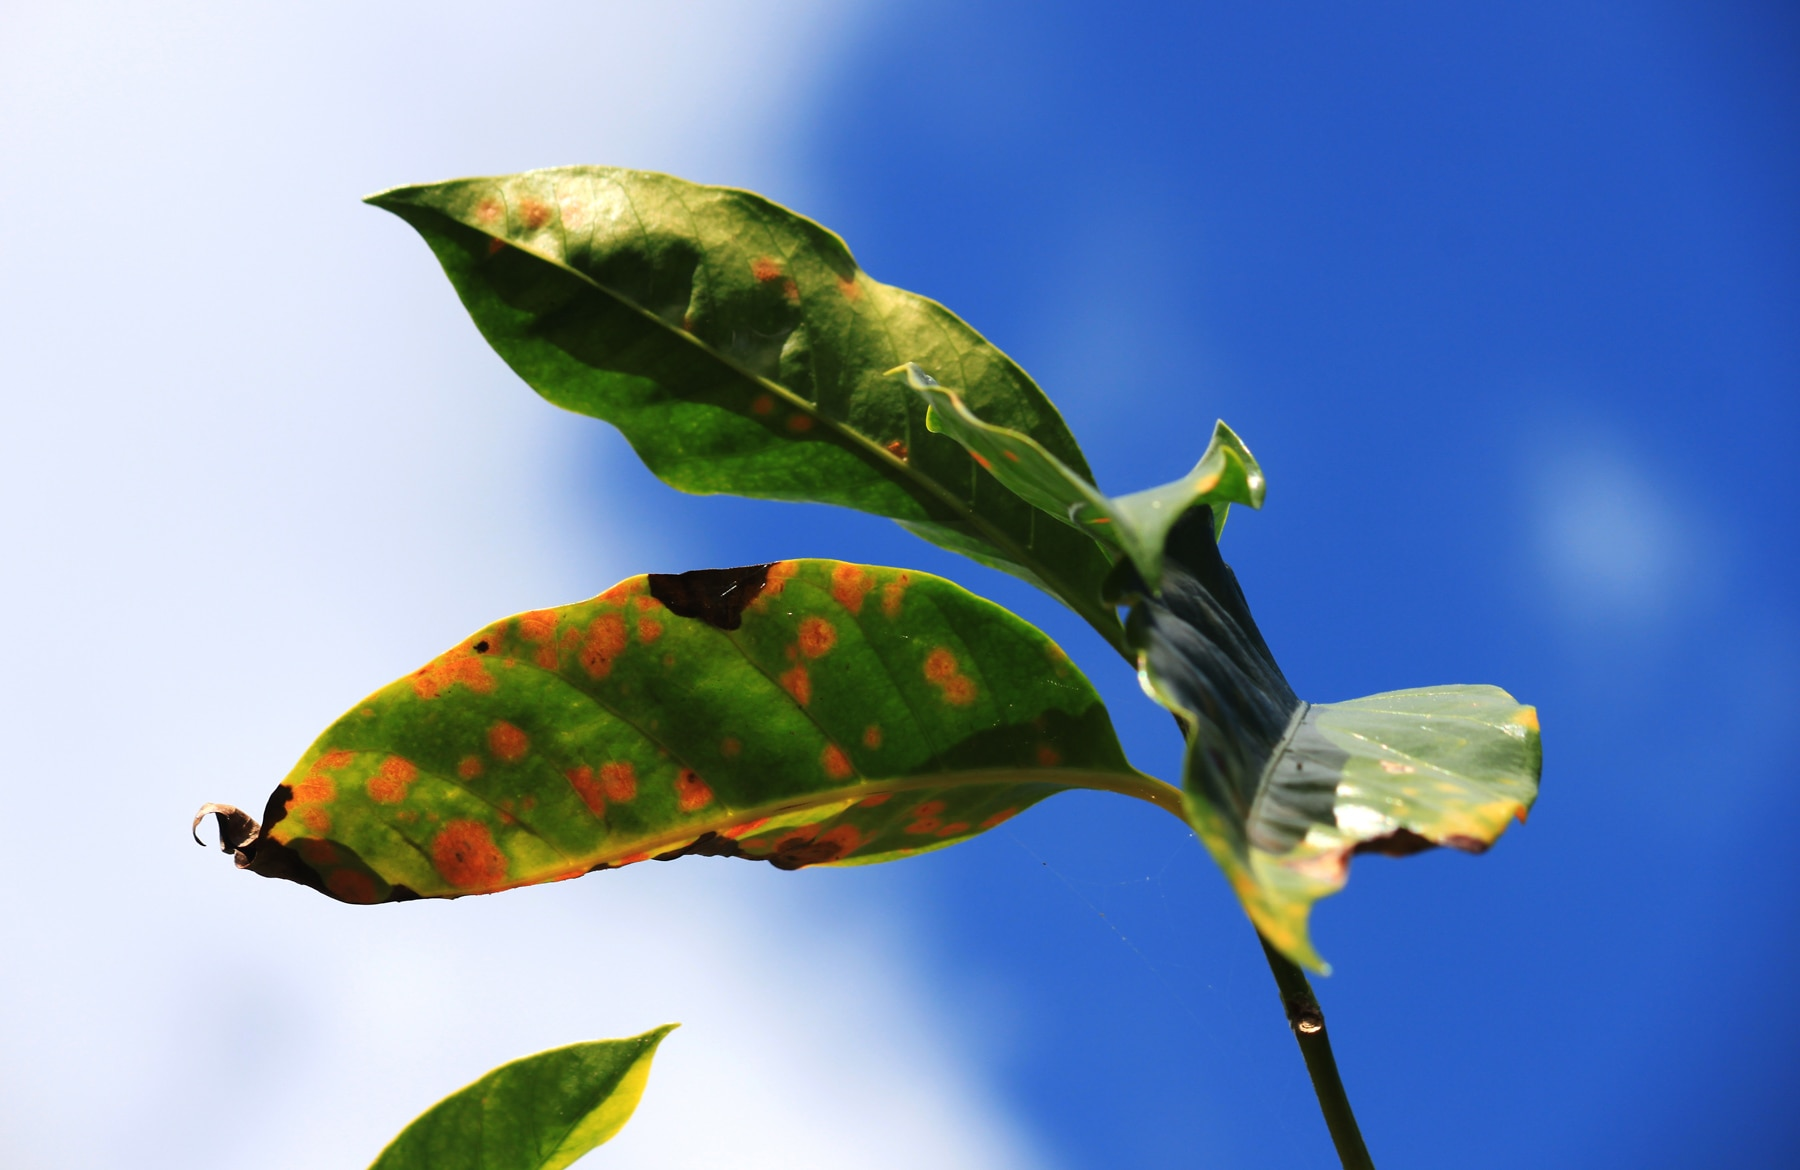 Discolored, spotty leaves against a blue sky (Root Capital)